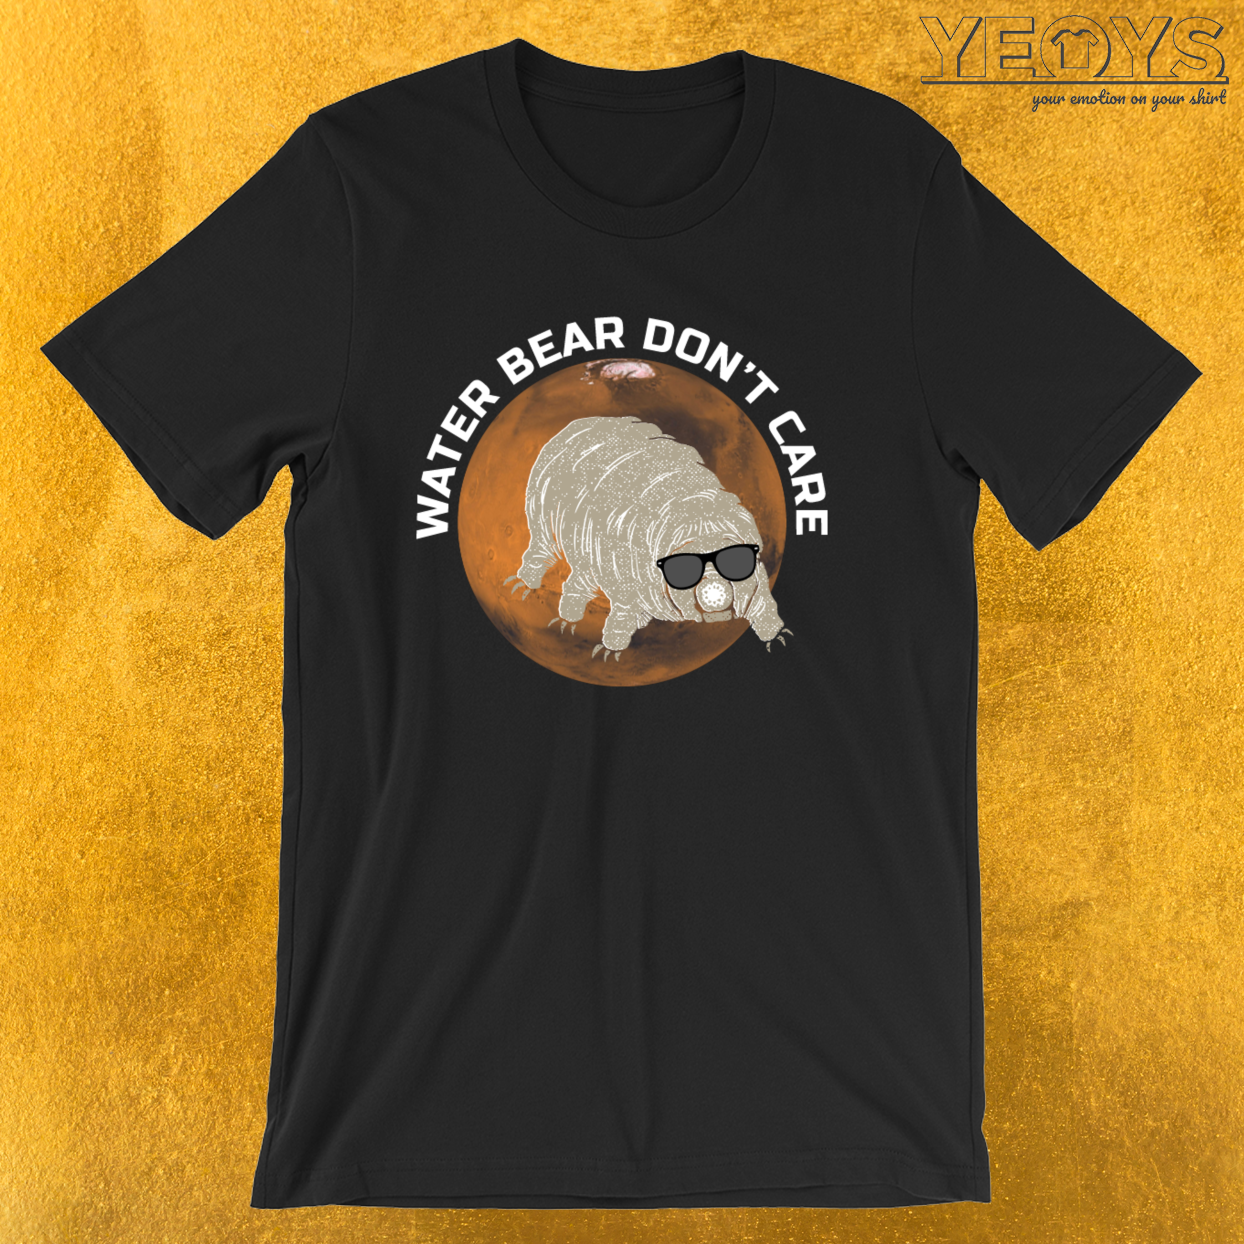 Funny Tardigrade Quote – Water Bear Don't Care Tee